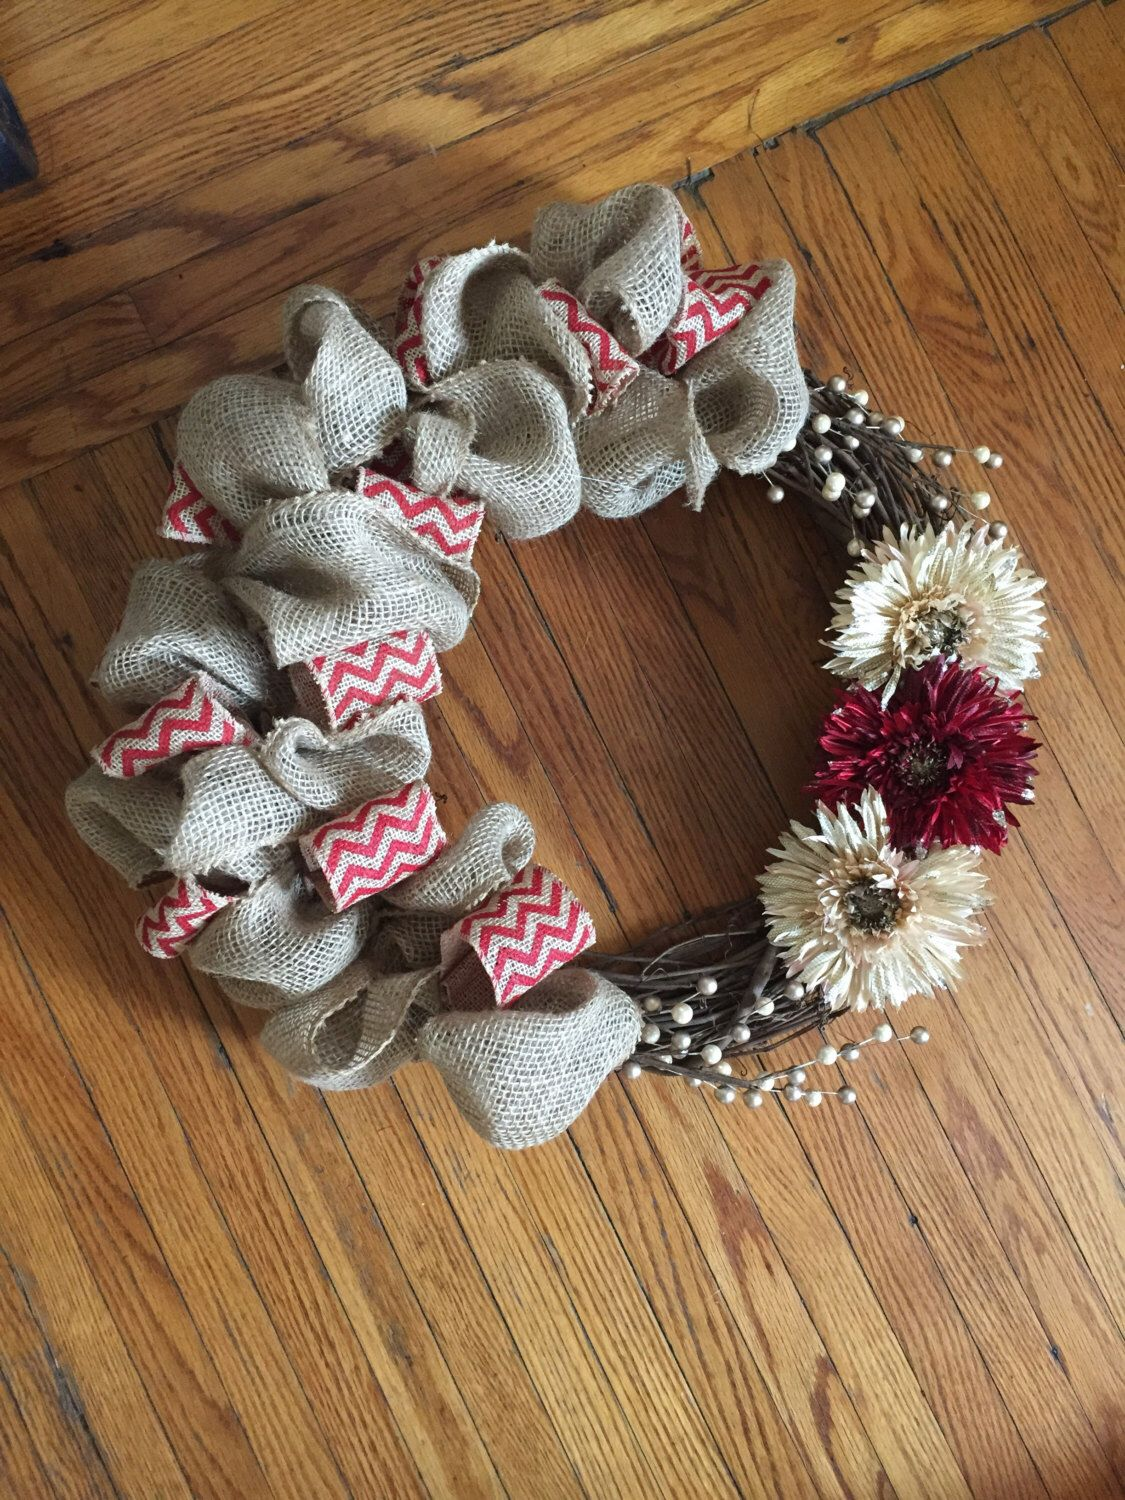 Burlap Wreath- personalized by midwesternbell on Etsy https://www.etsy.com/listing/293917545/burlap-wreath-personalized